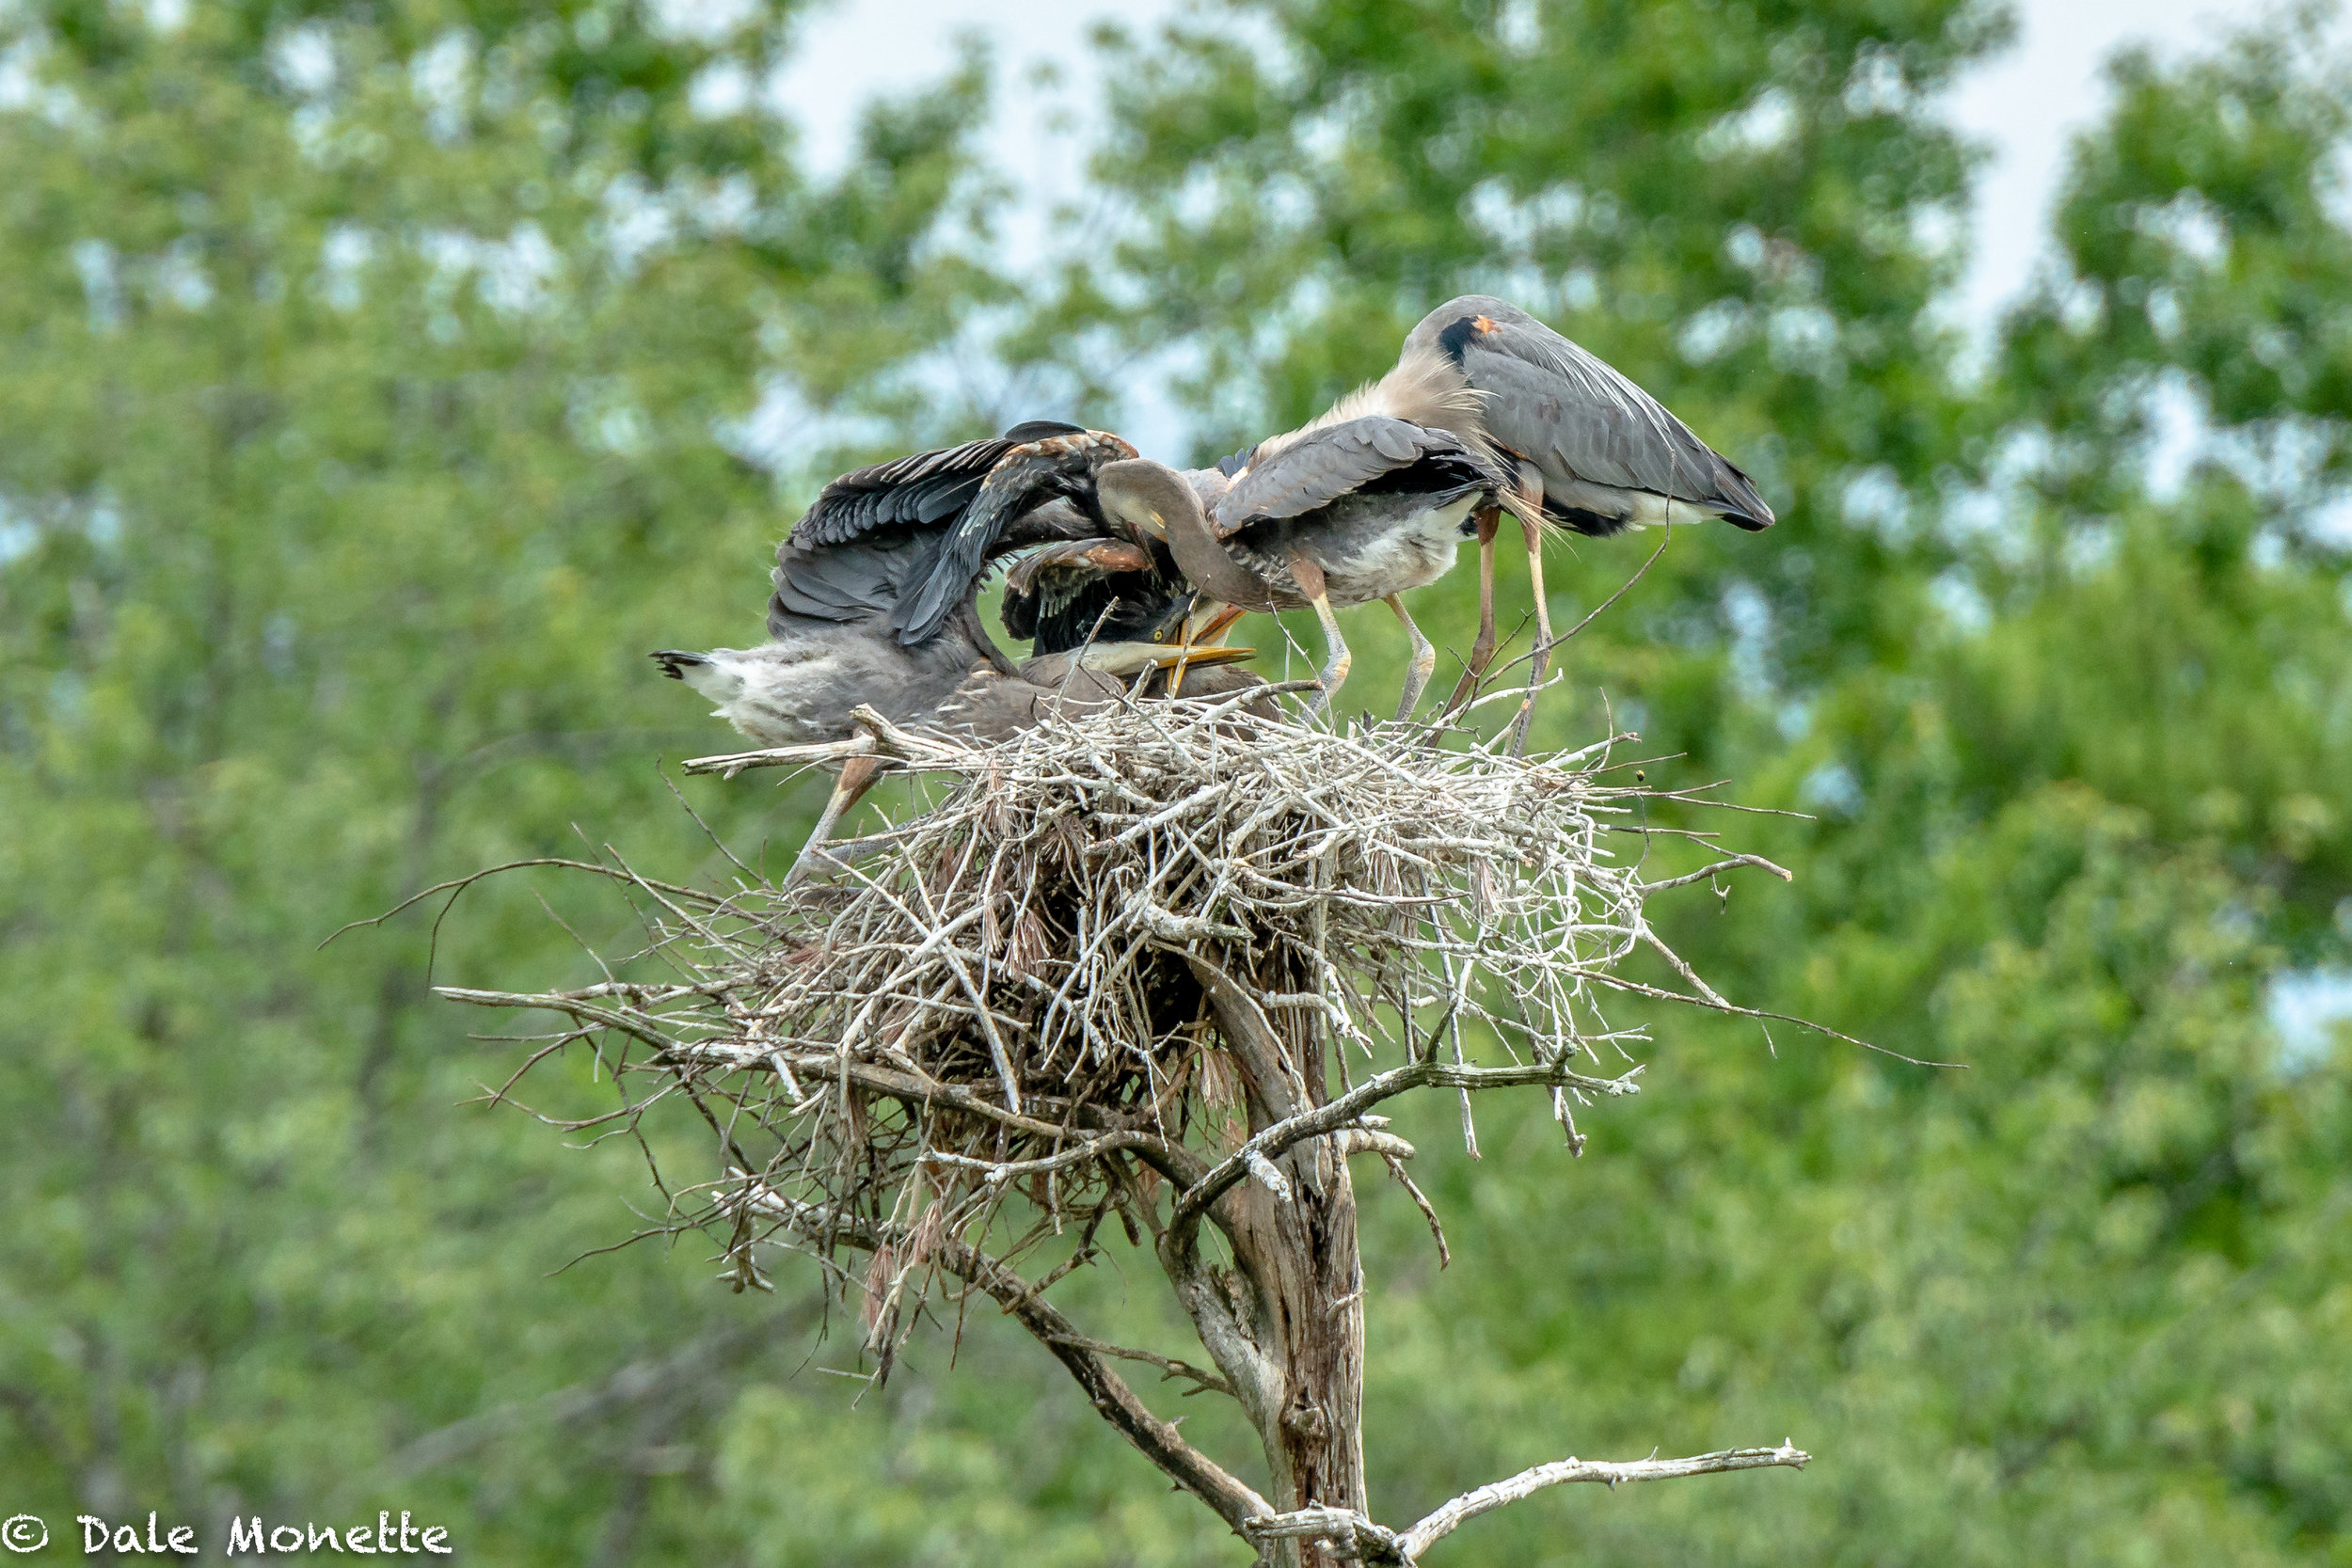 Here's a photo I took in summer of 2016. There are 4 great blue herons in the nest. An adult and 3 chicks at feeding time. Can you see the chick on the bottom upside down trying to catch some fish from mom ?